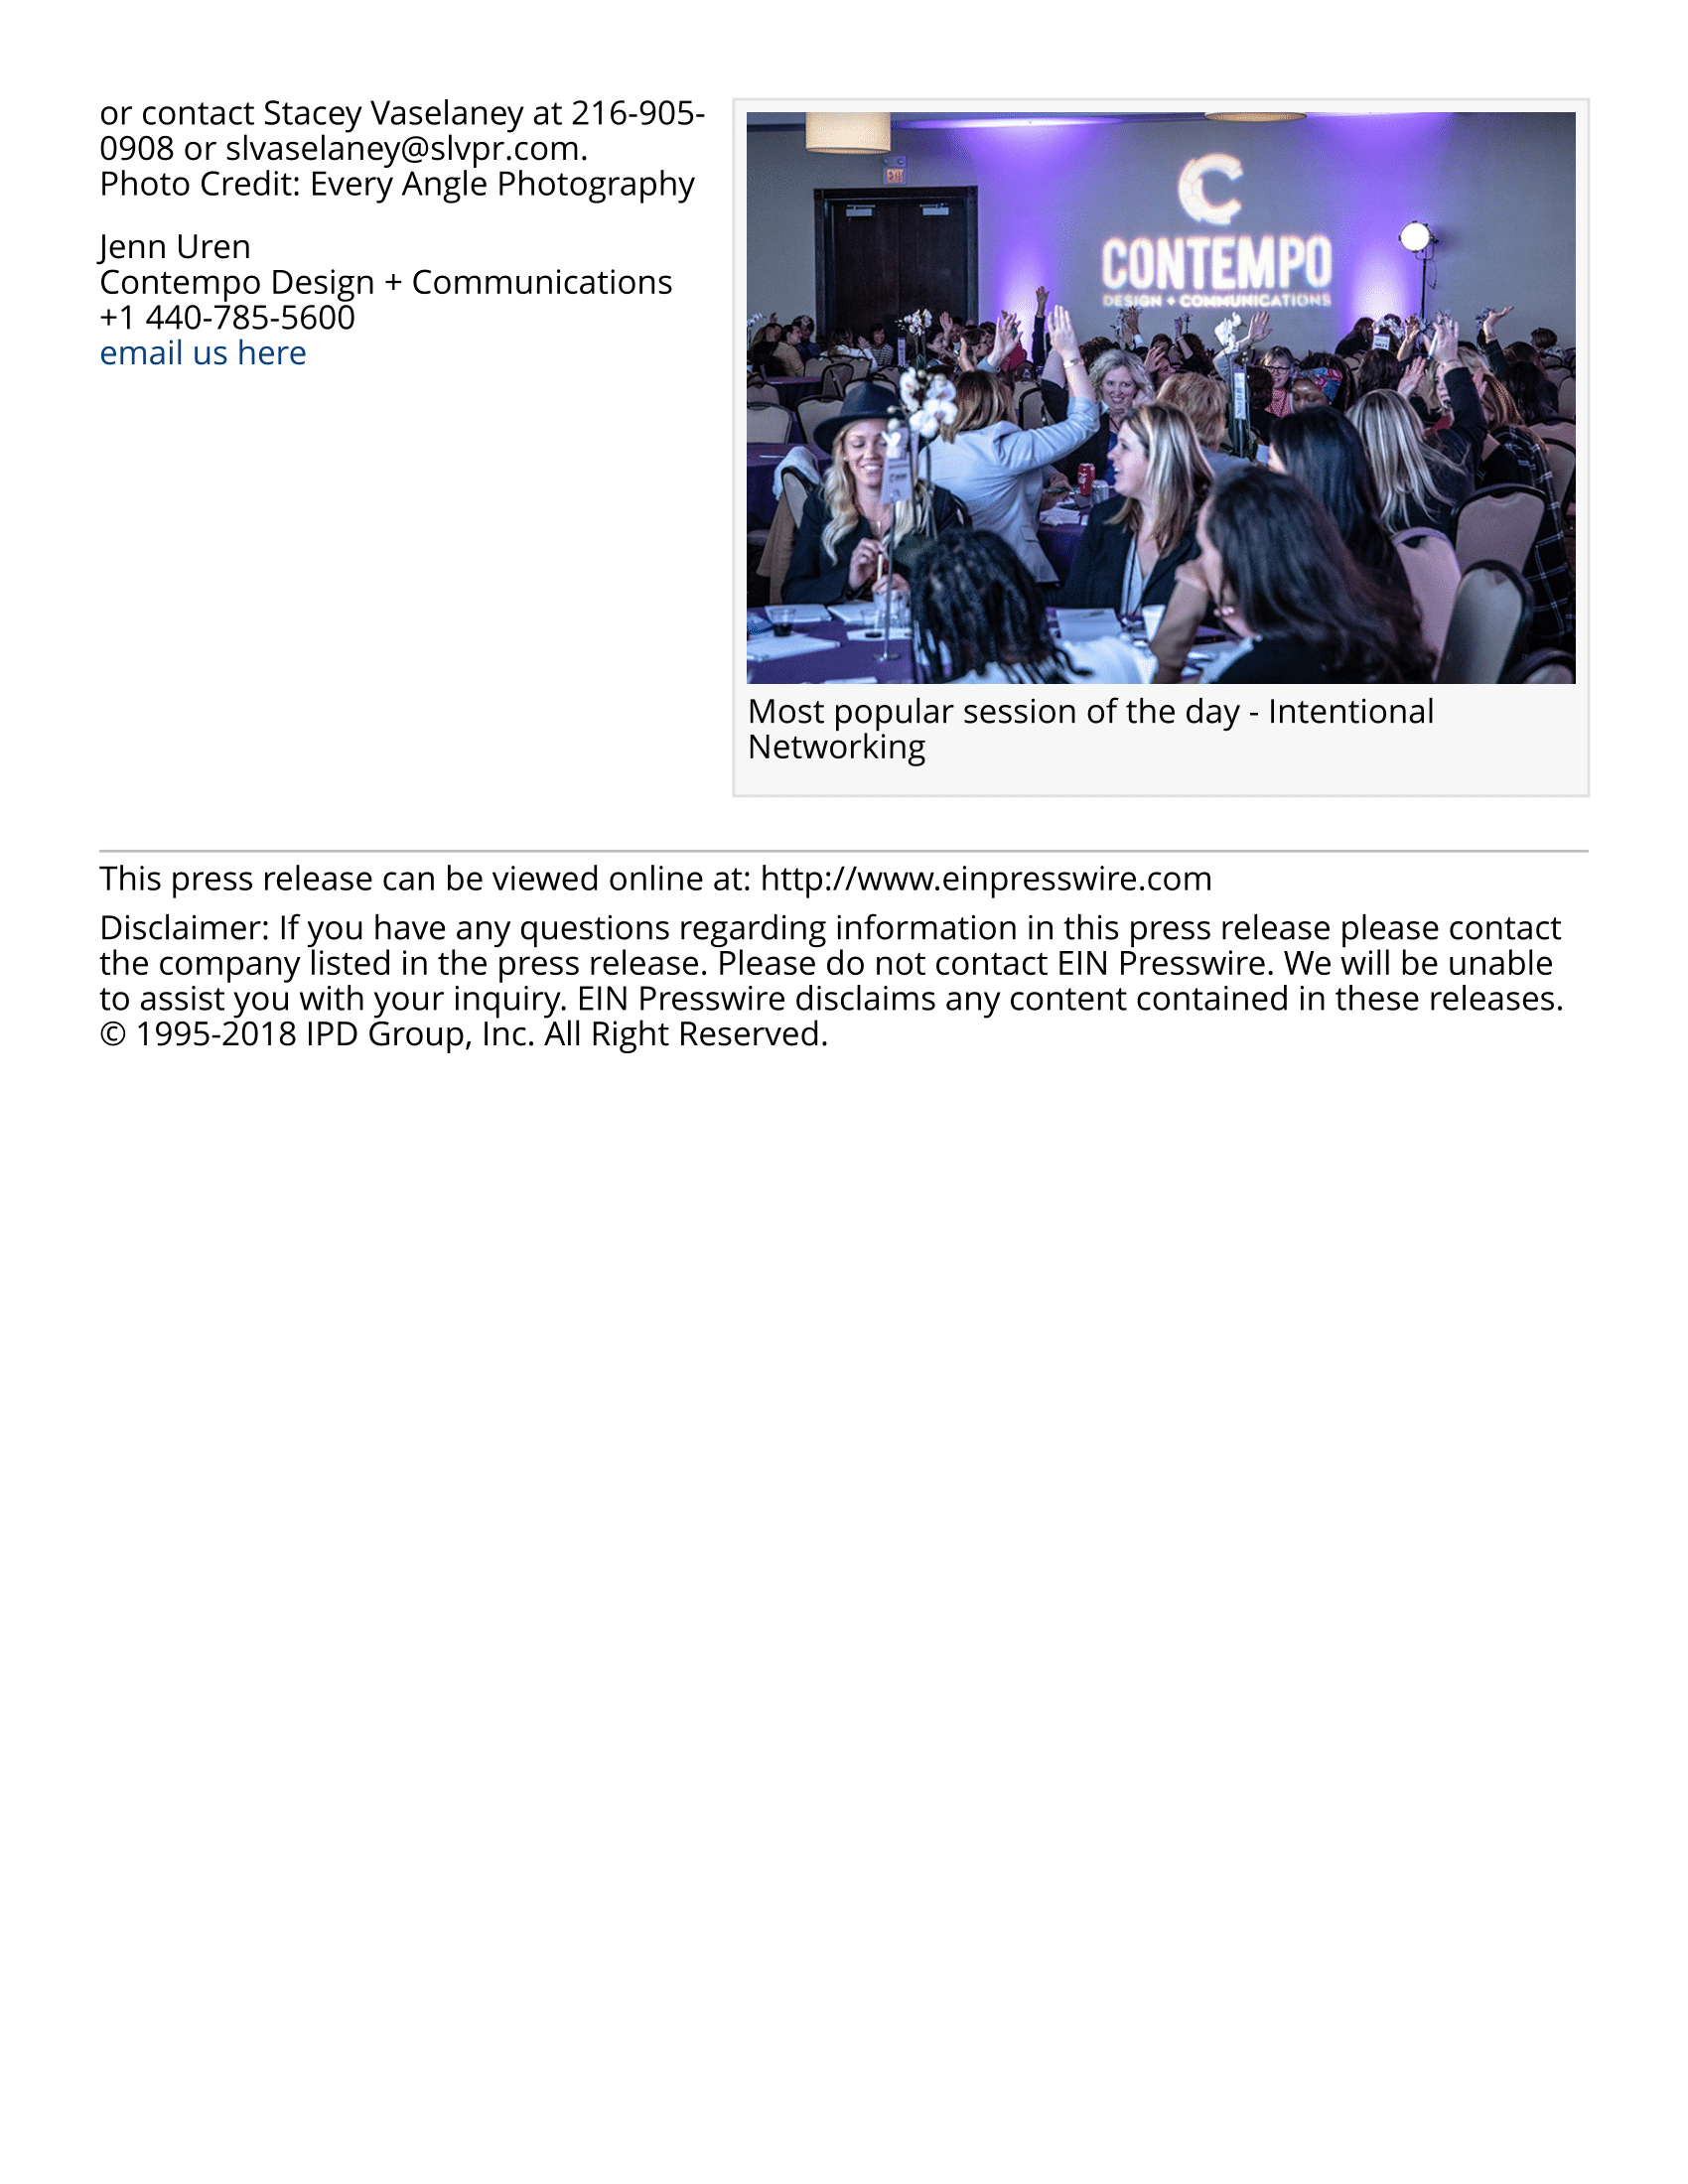 EINPresswire-466477316-7th-annual-female-entrepreneur-summit-drew-nearly-300-women-3.png